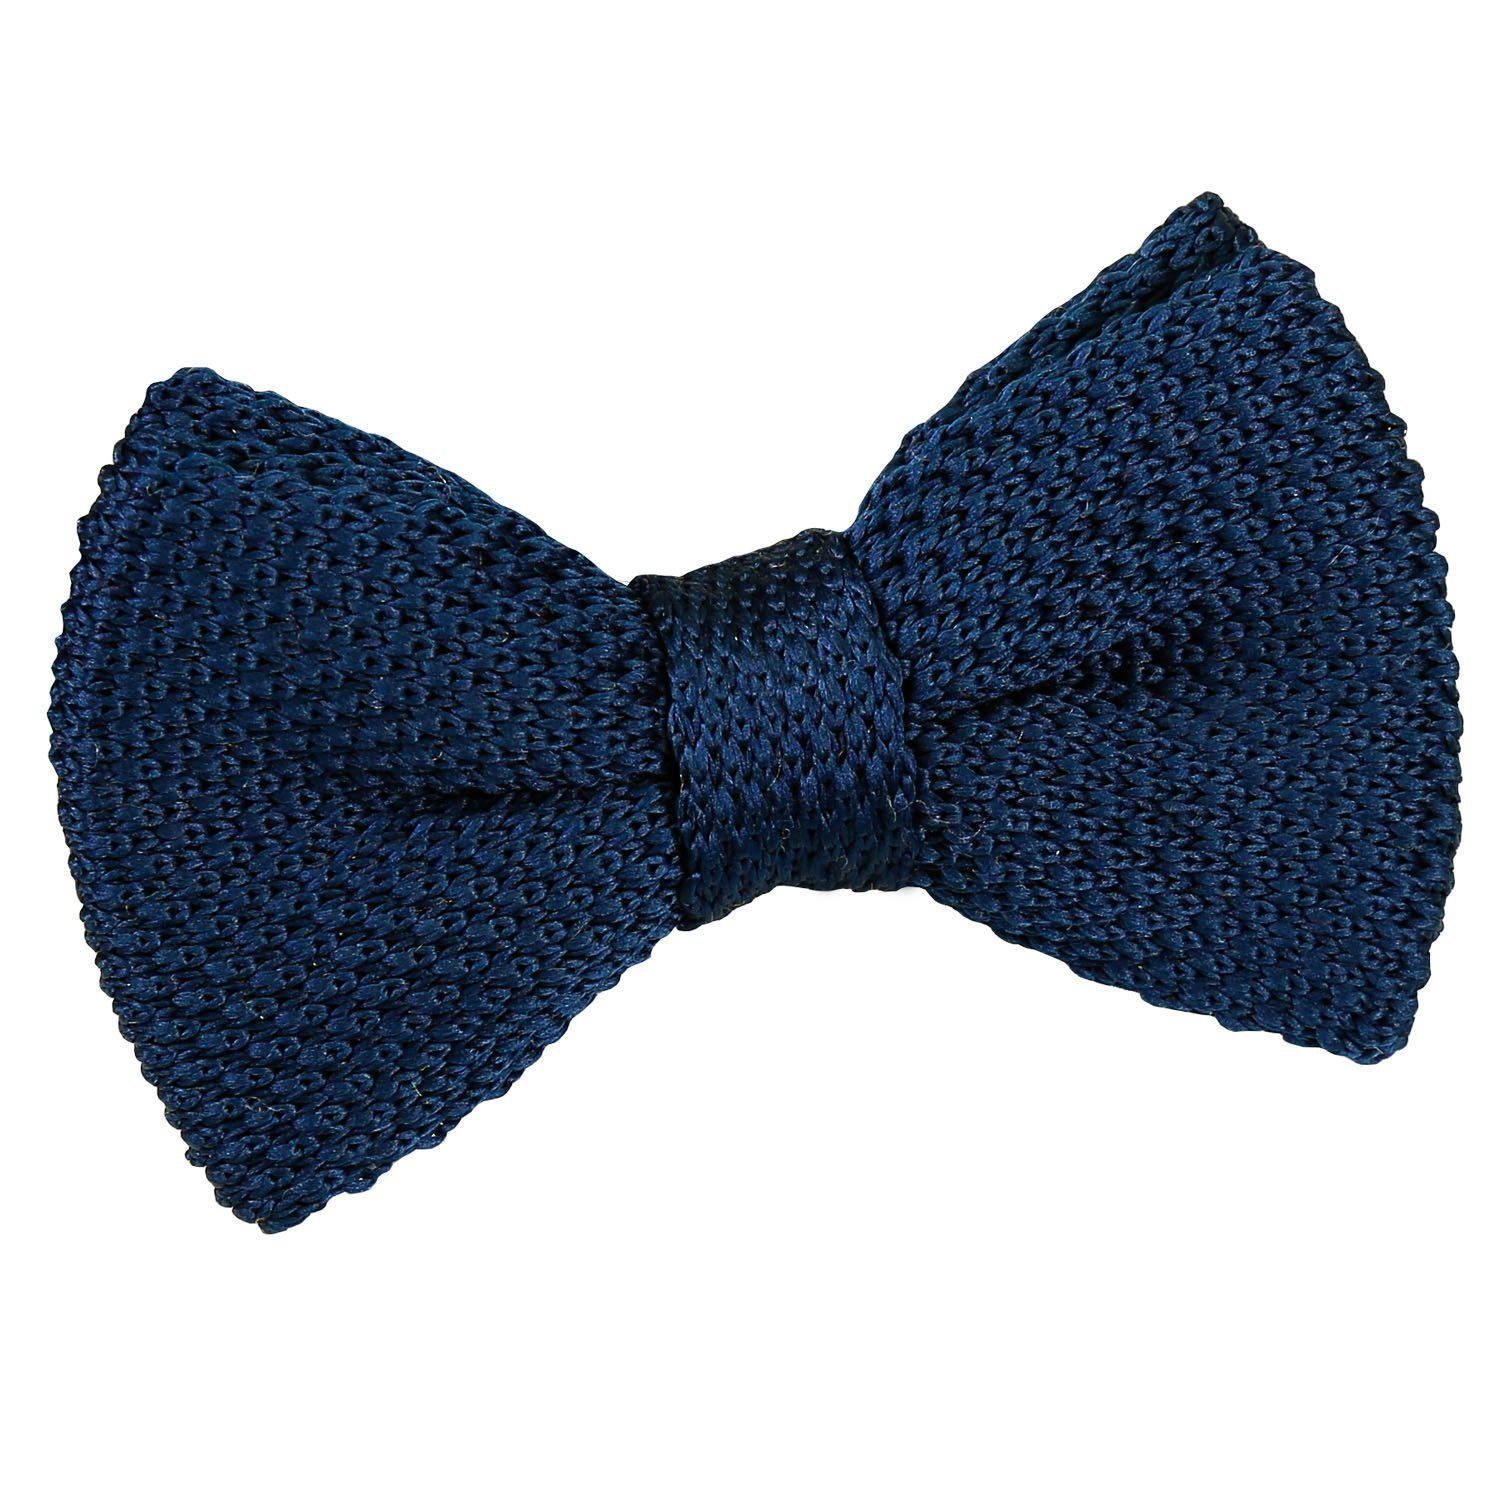 c1192bd4cd54b Navy Blue Knitted Pre-Tied Bow Tie for Boys